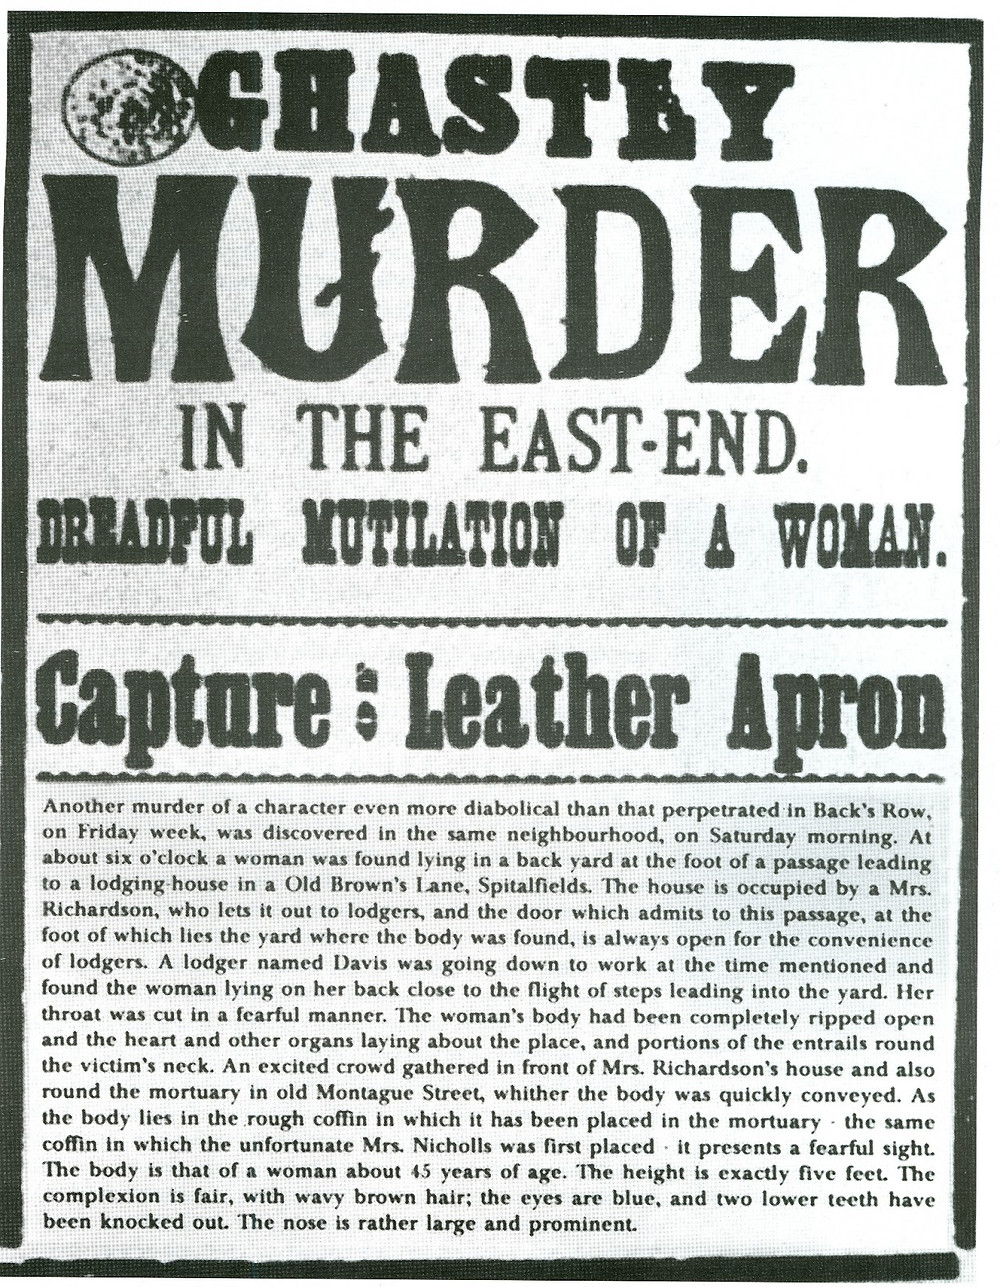 A wanted poster from 1888